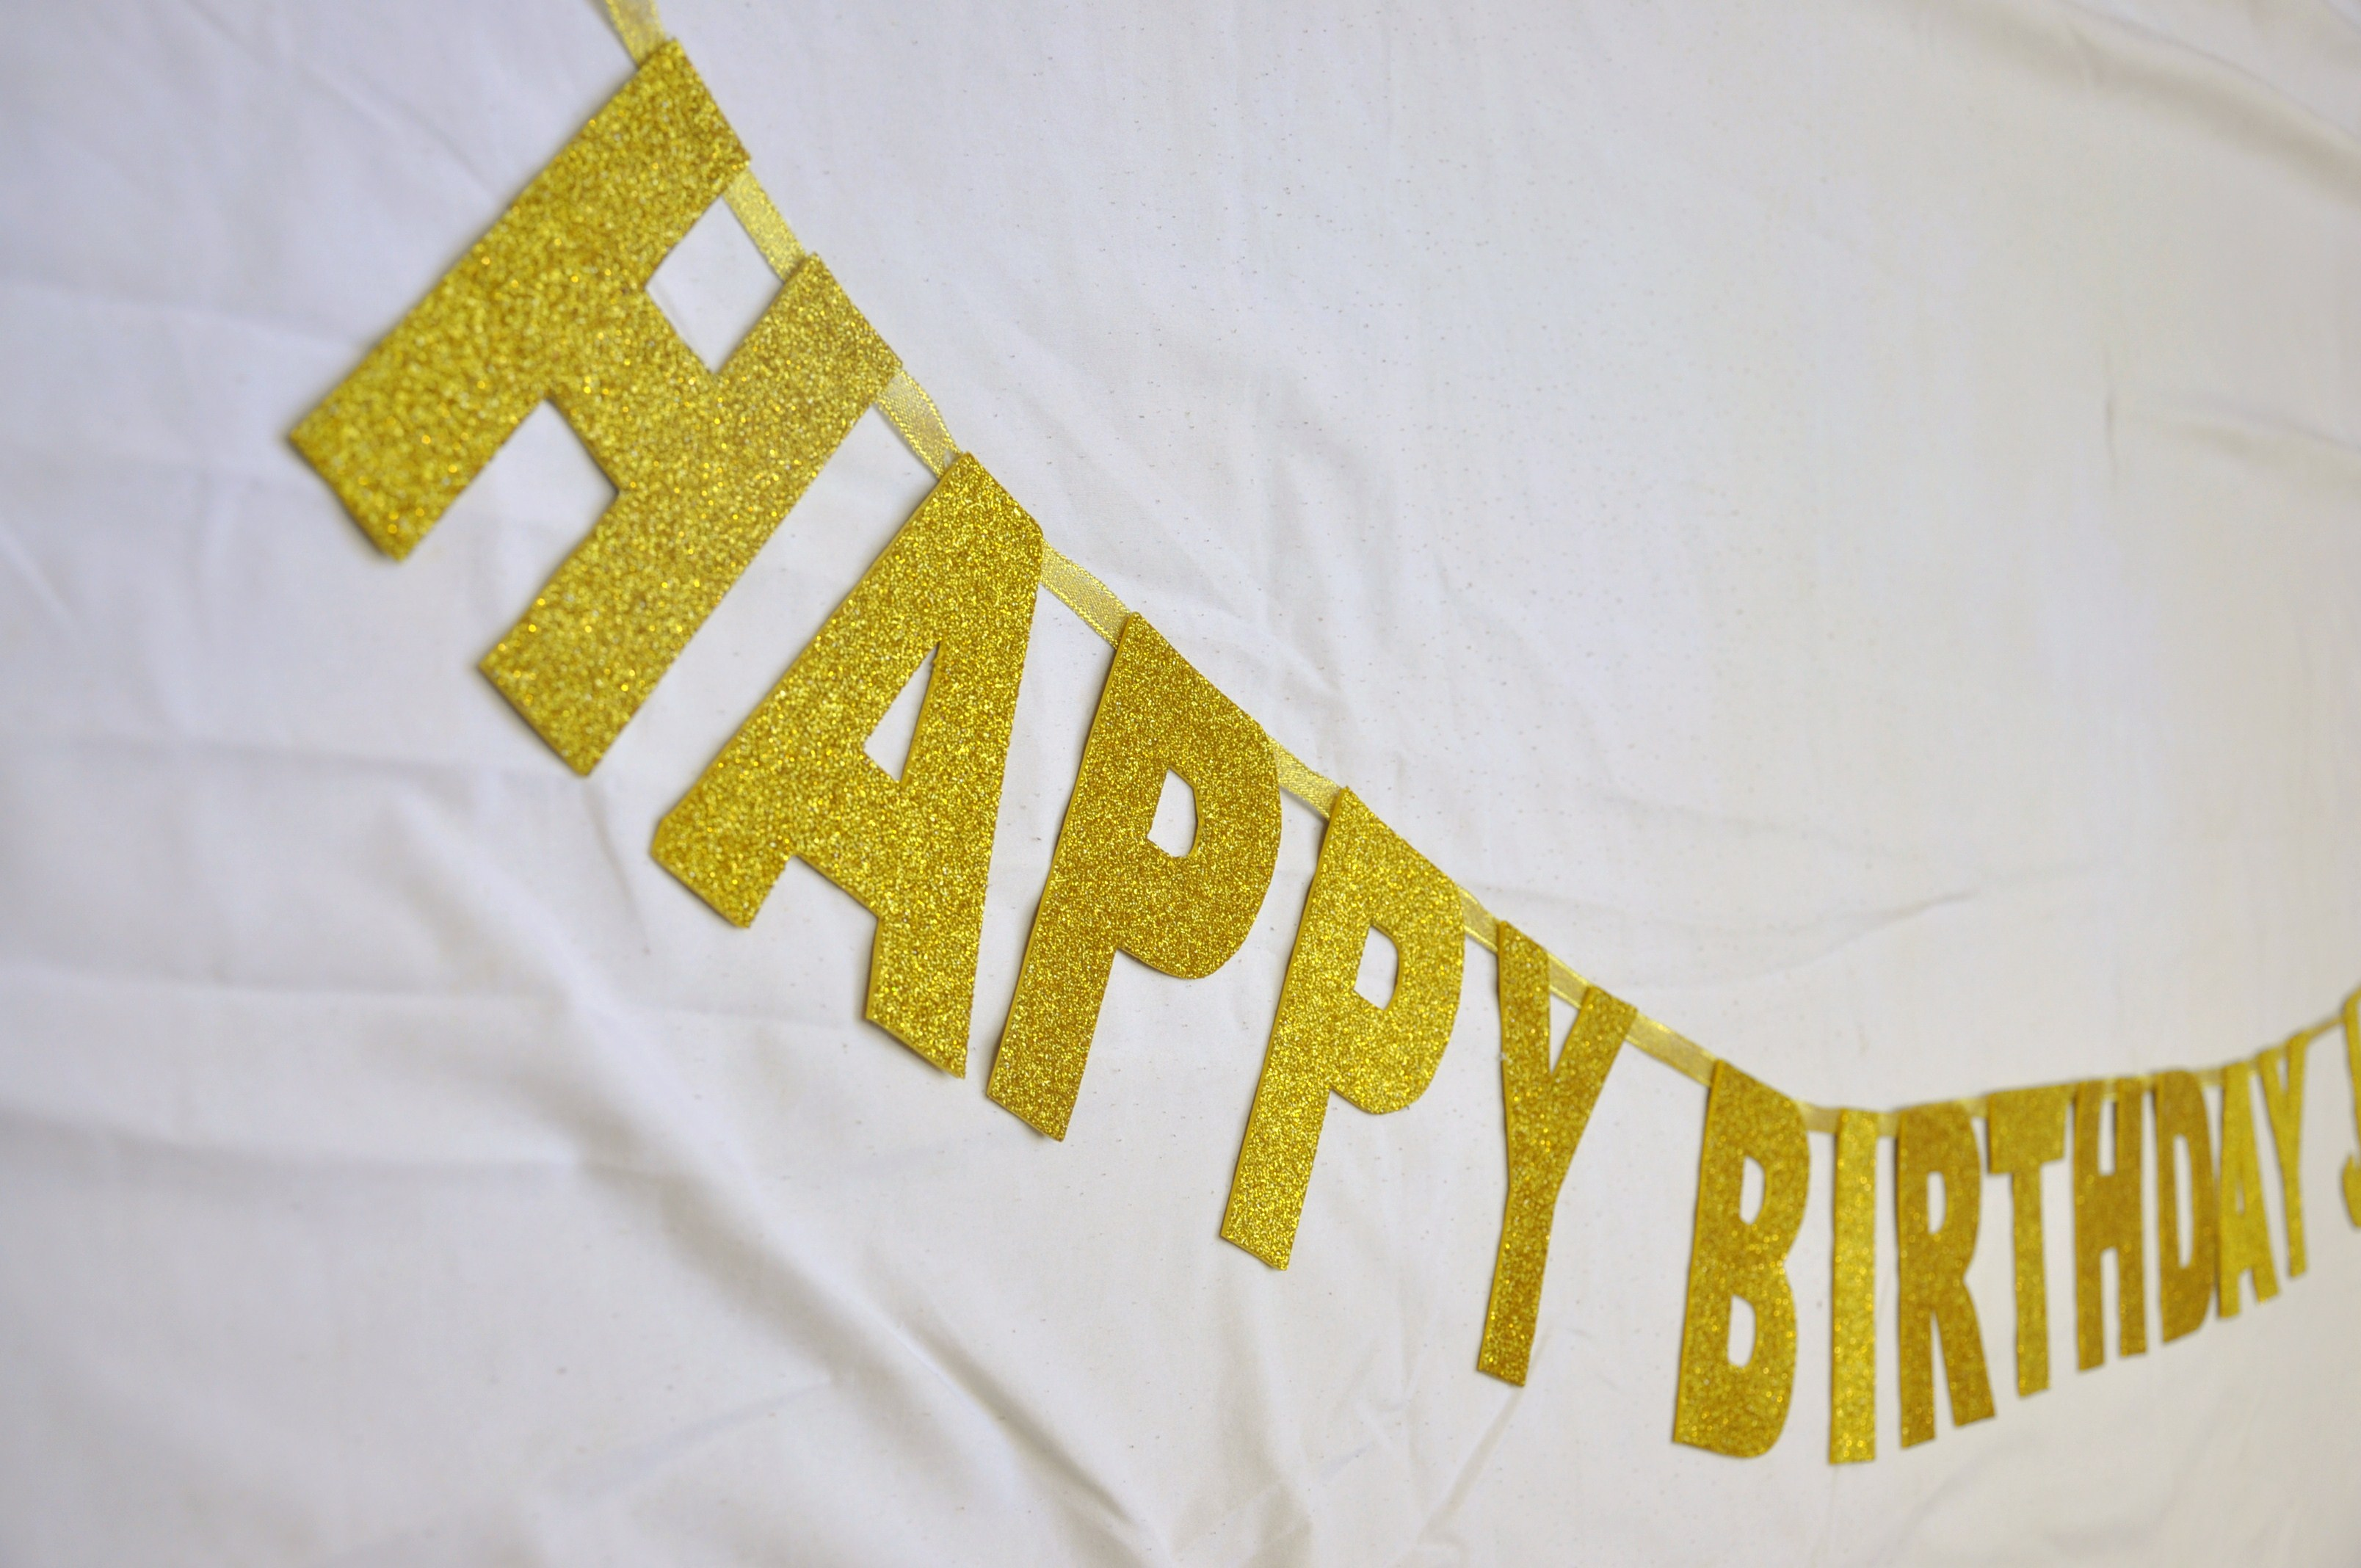 happy birthday banner - shiny garland - by loiseaubleu on Zibbet